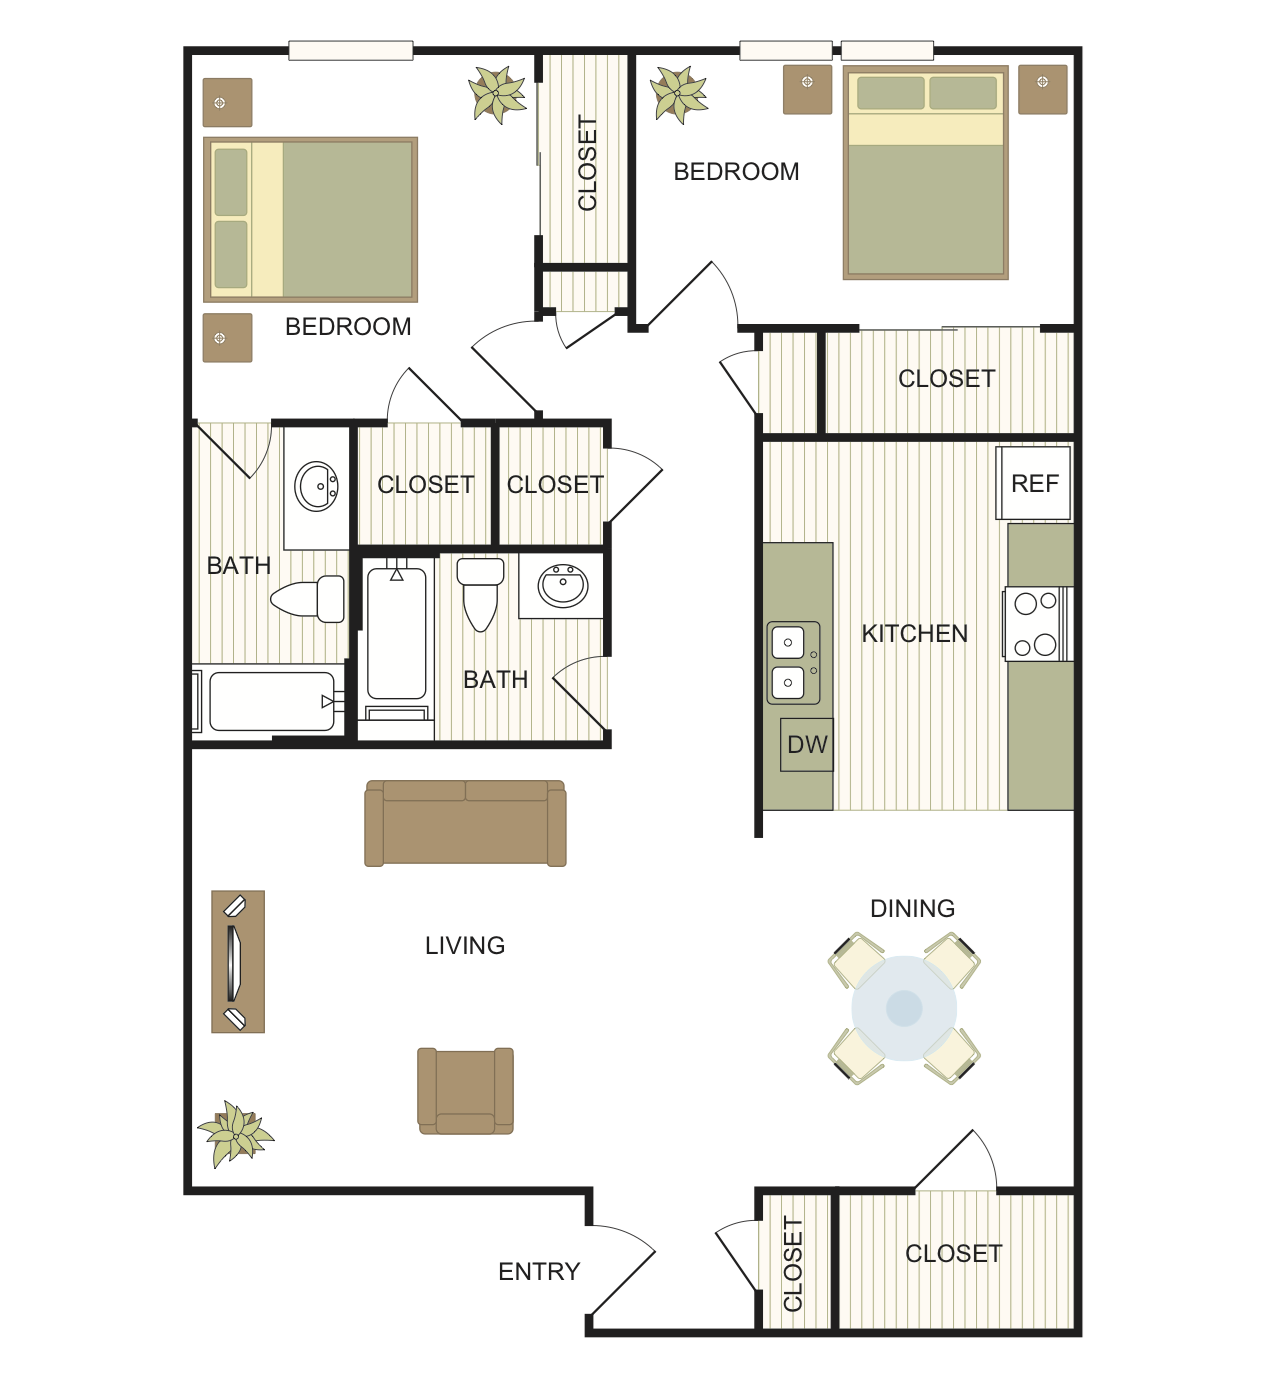 Floor Plans Of RiverStone Apartment Homes In New Braunfels, TX